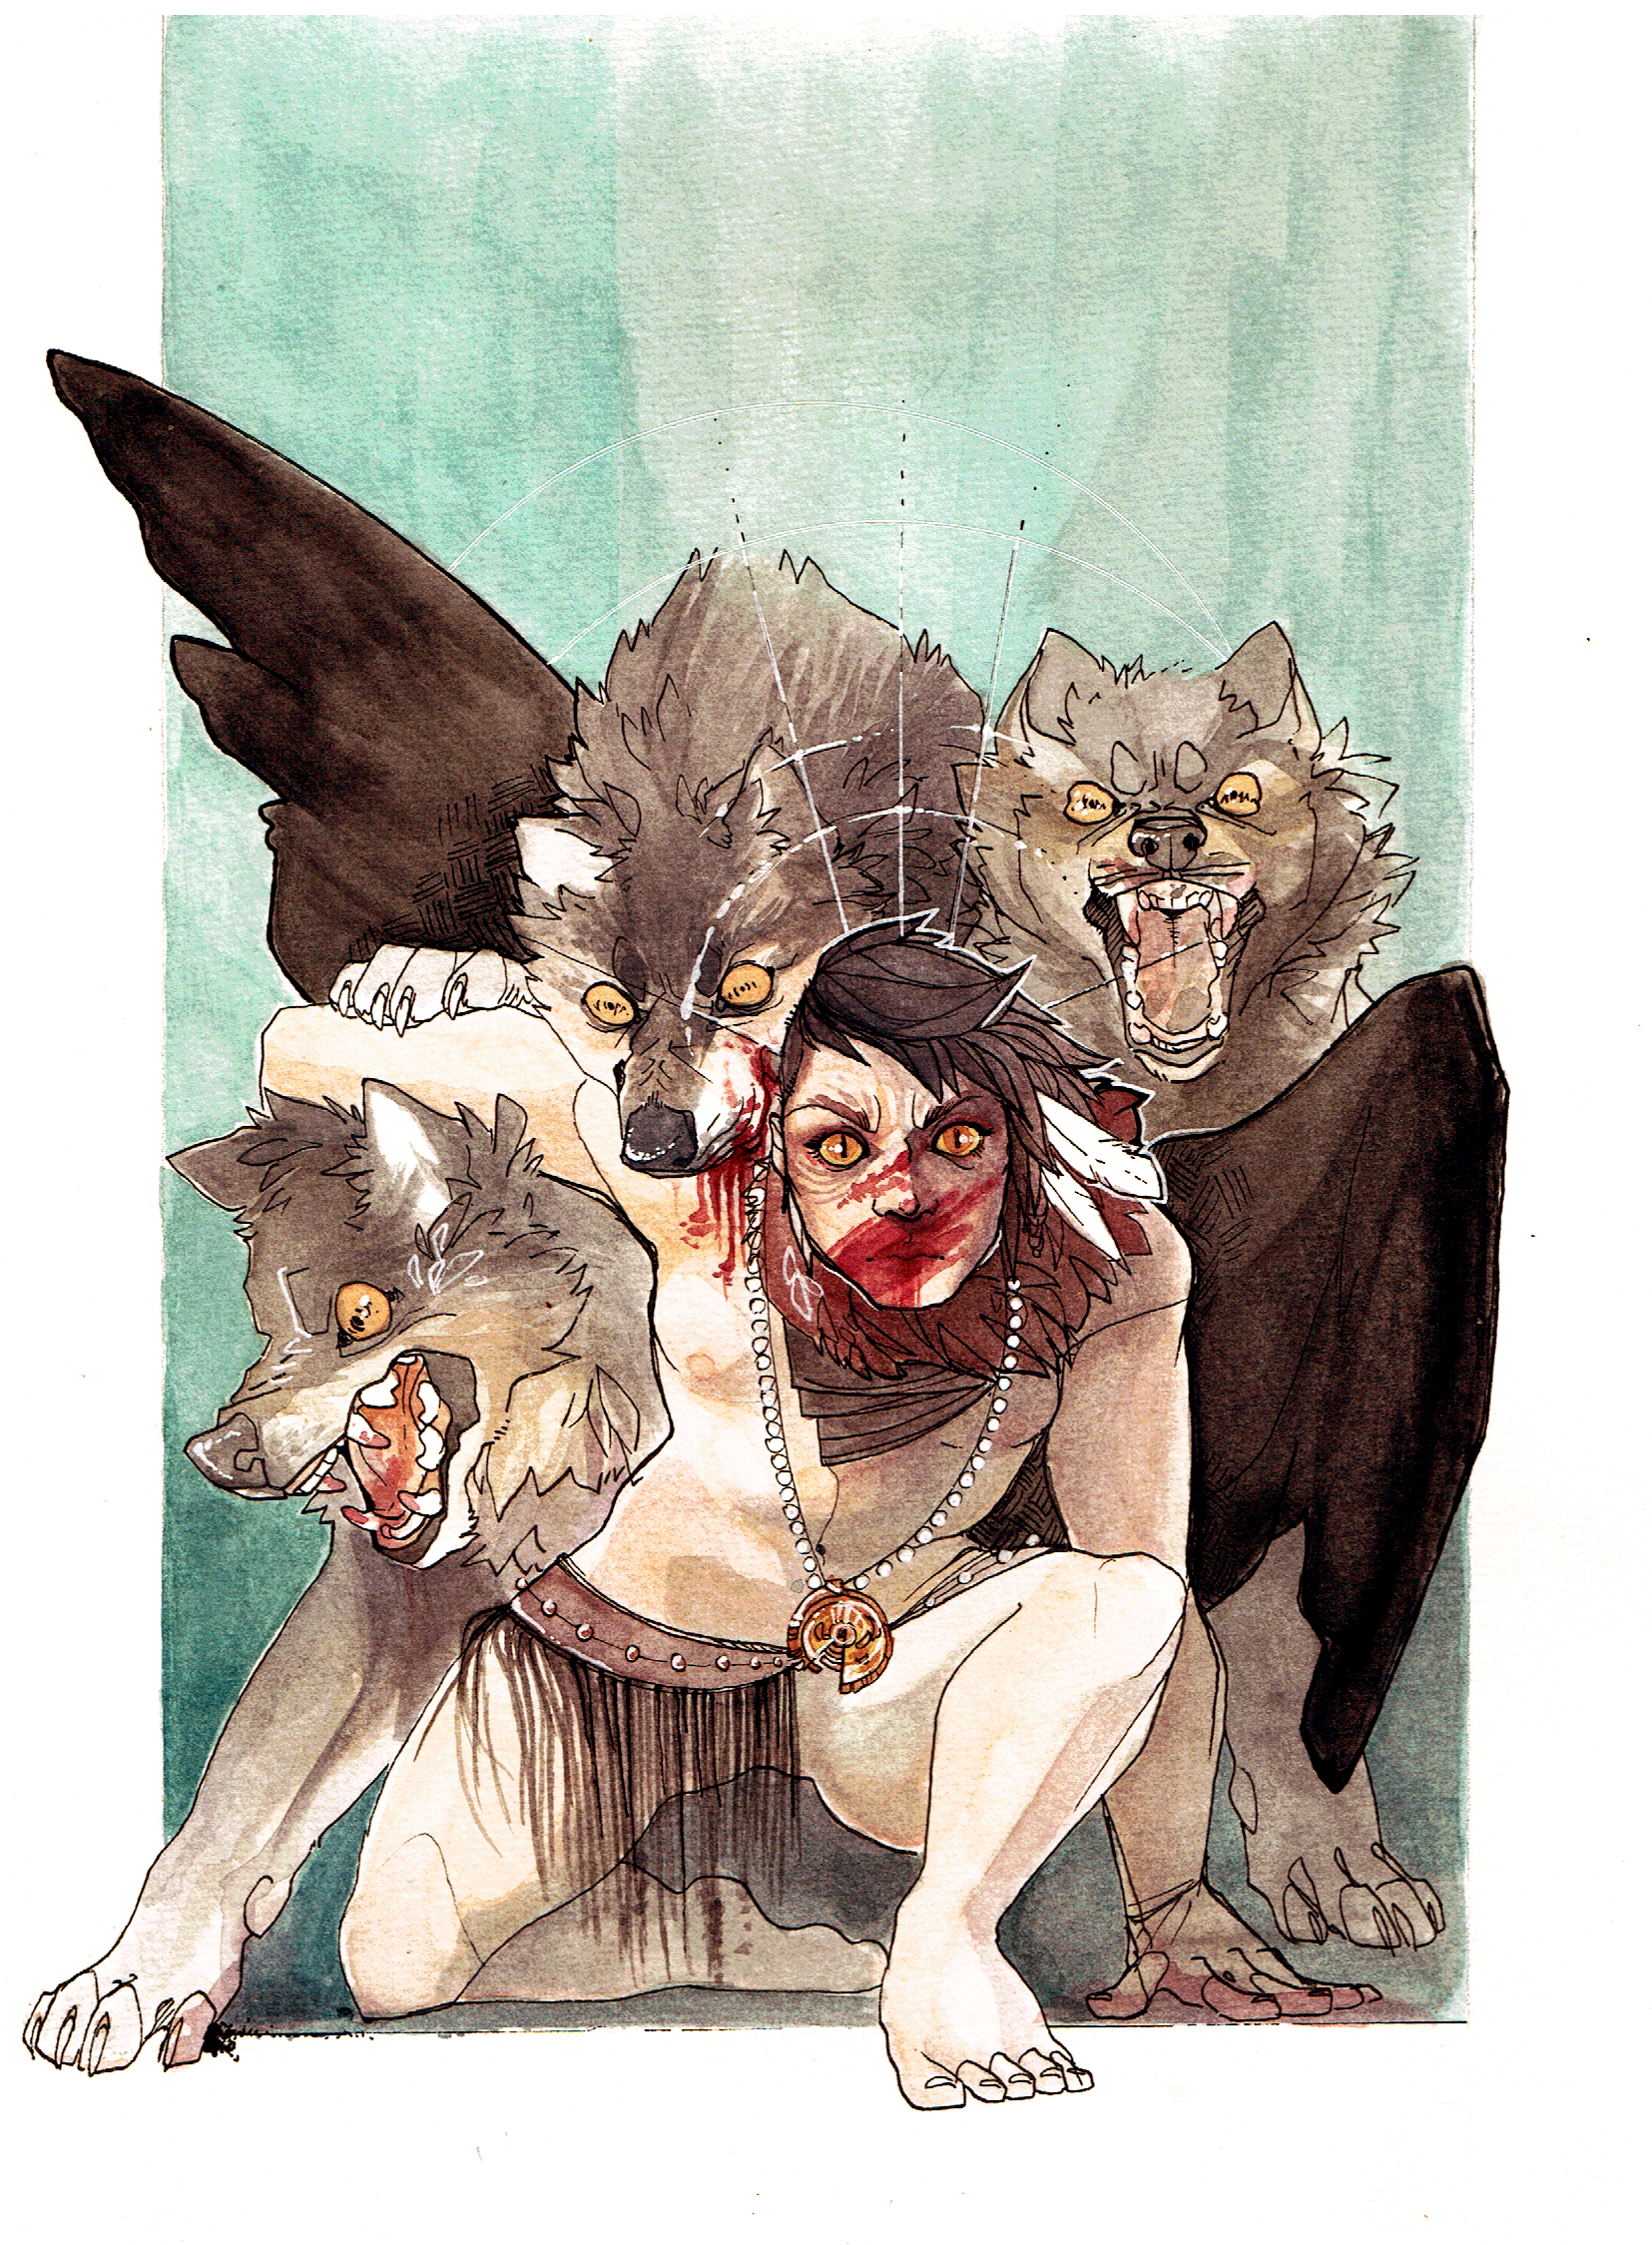 Dec 2014 - Watercolour  Personal Painting for the Arisia Art Show